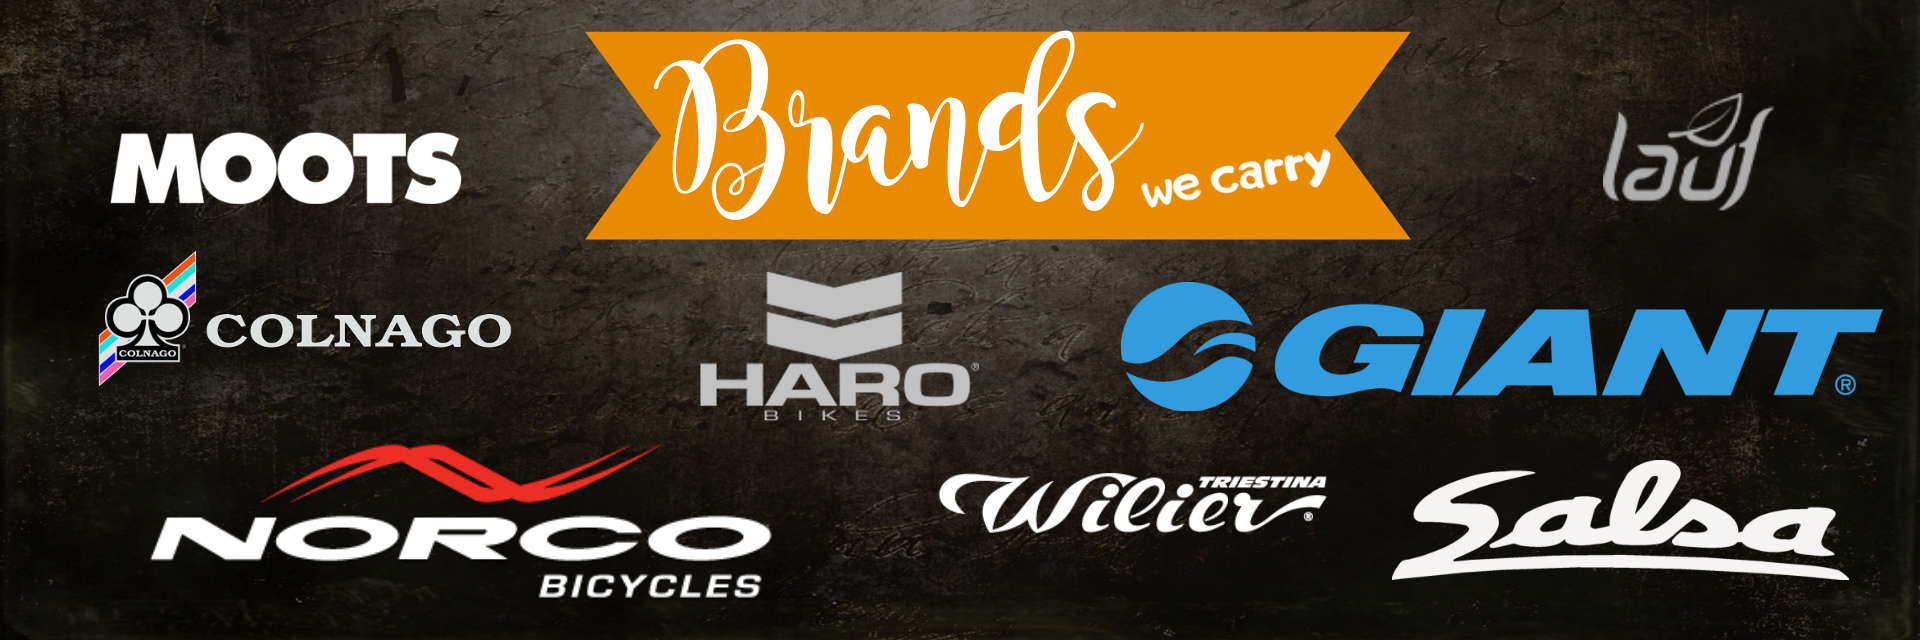 Brands We Carry at Handlebar Cyclery